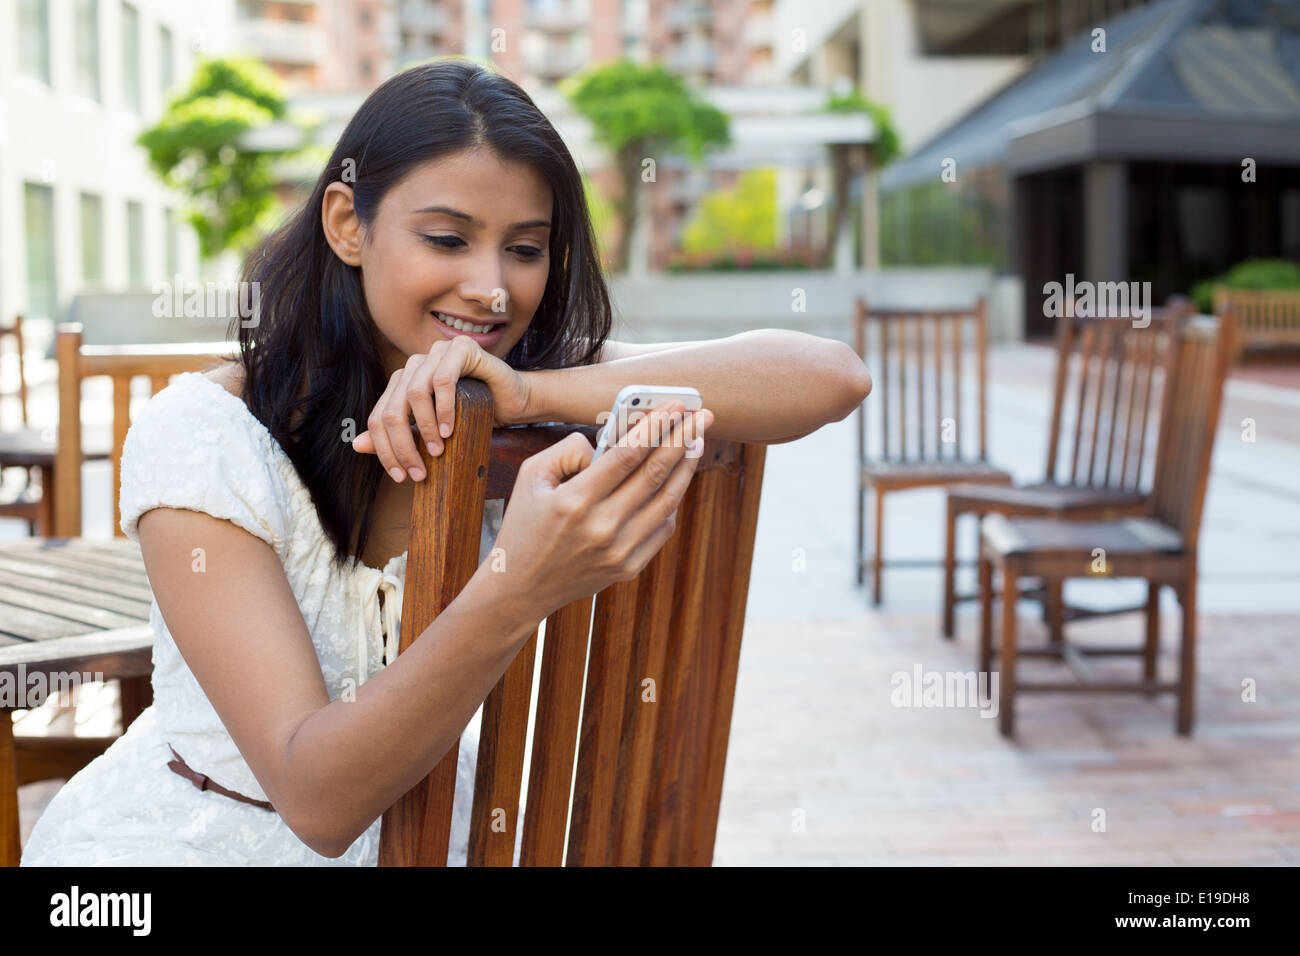 Perusing texts or emails - Stock Image